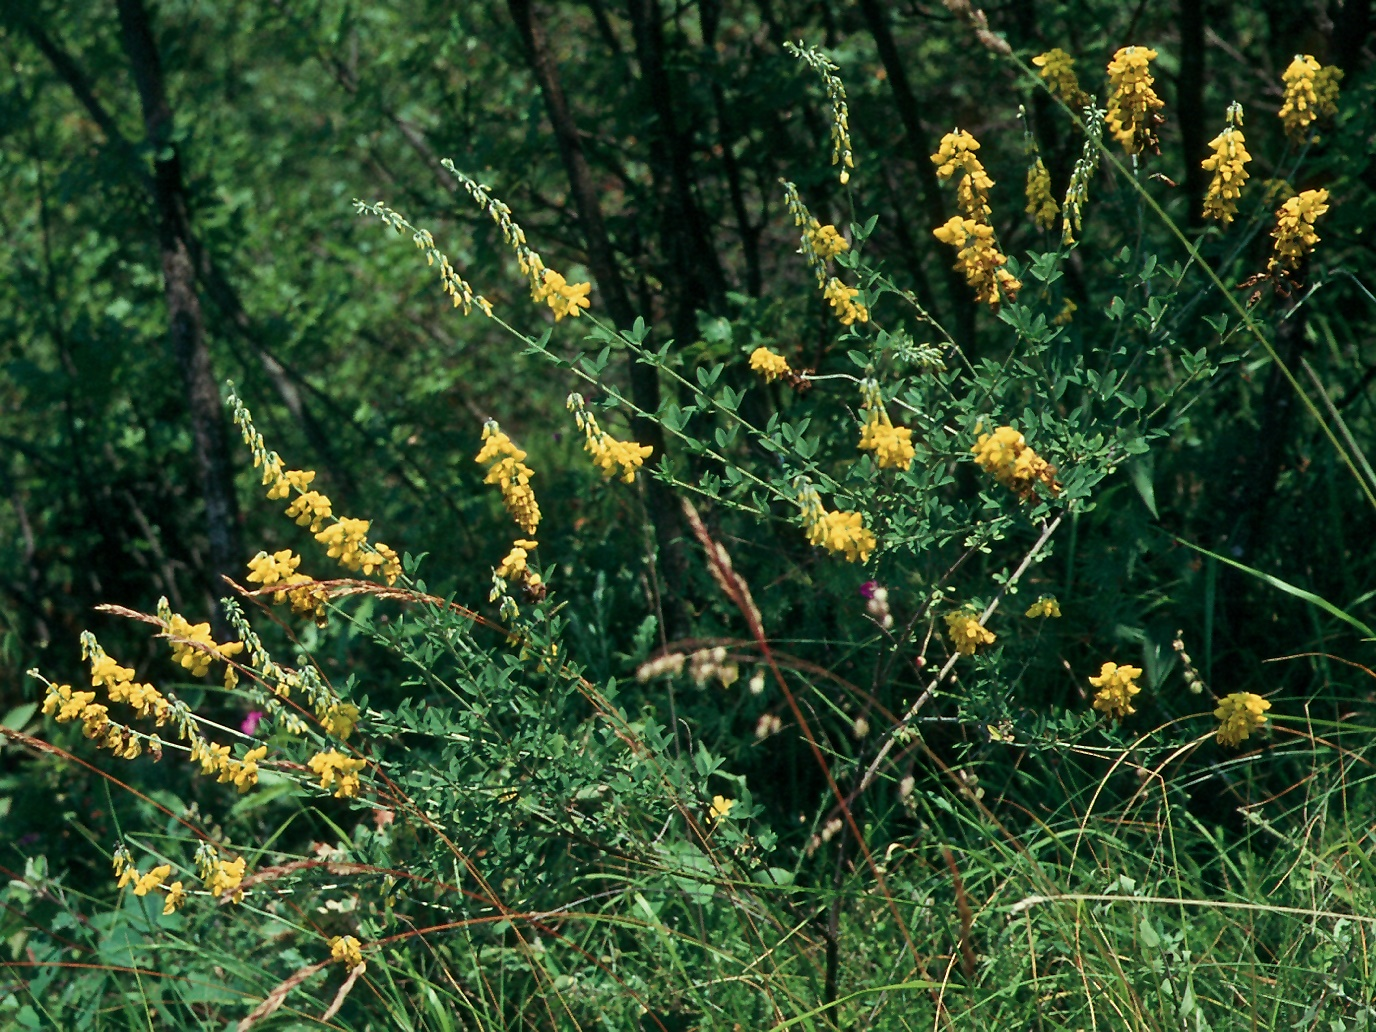 Cytisus nigricans